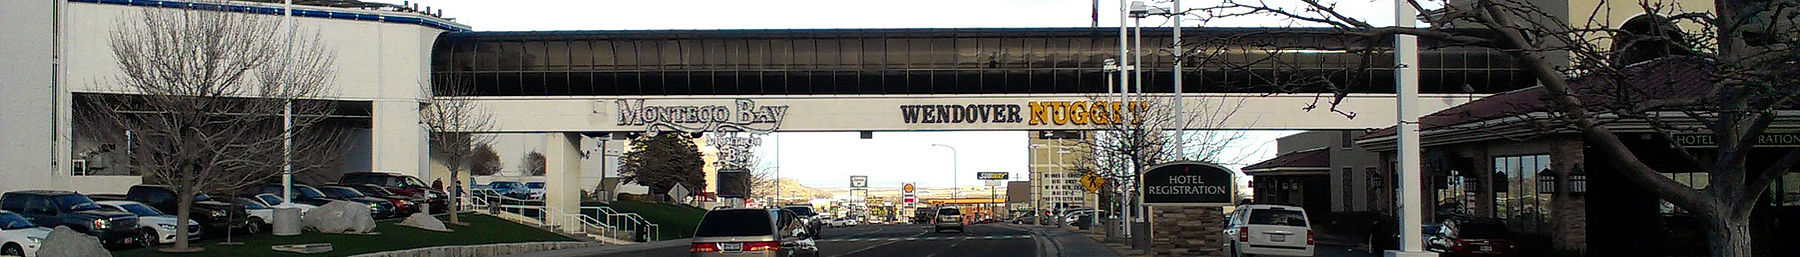 The skybridge over Wendover Boulevard, near the state border